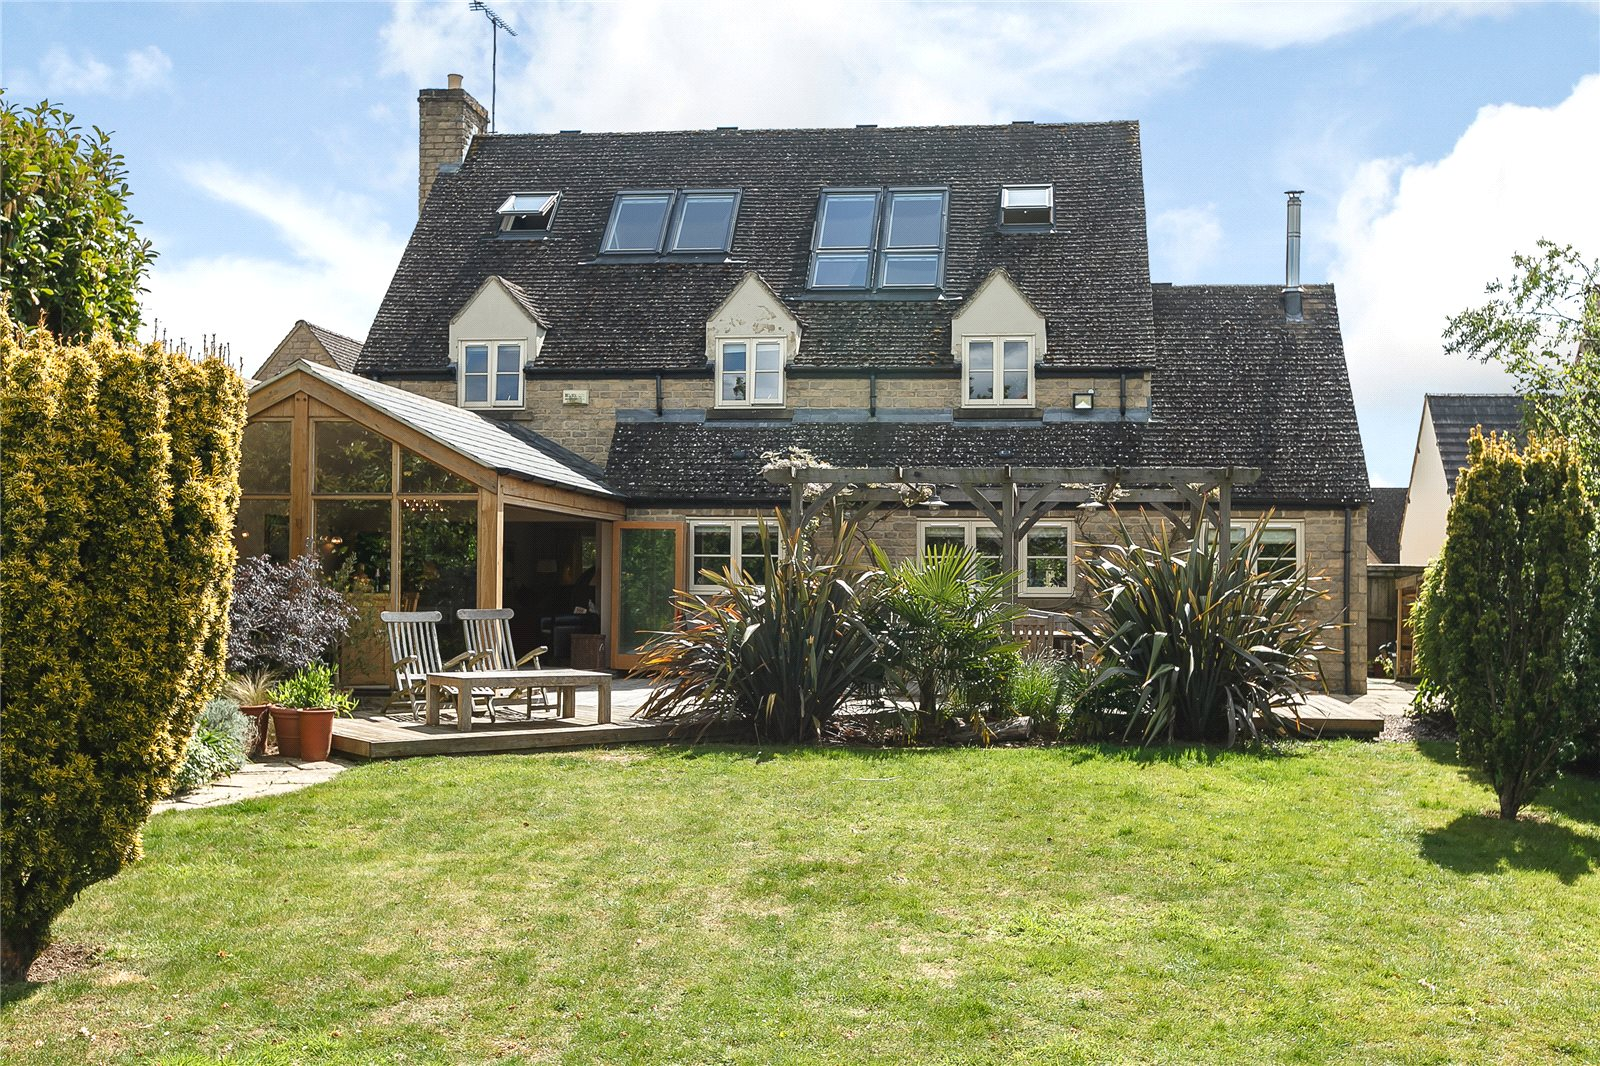 一戸建て のために 売買 アット Churchill, Chipping Norton, Oxfordshire, OX7 Chipping Norton, イギリス